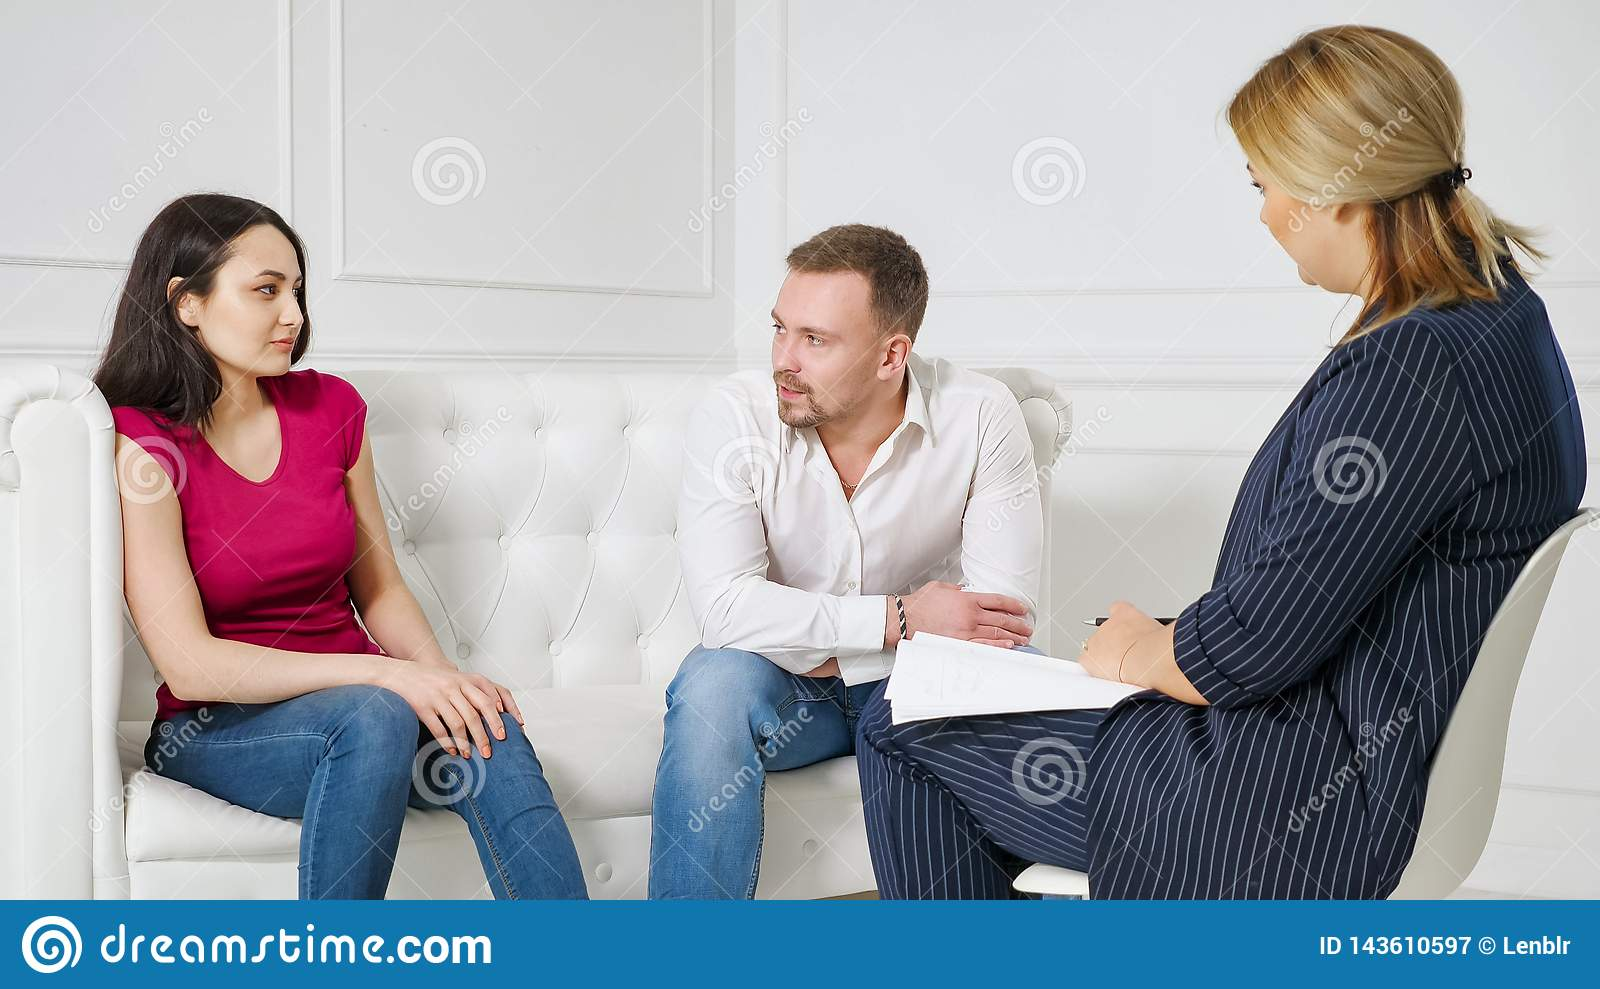 Family Marriage Counseling Therapy Session Concept Stock